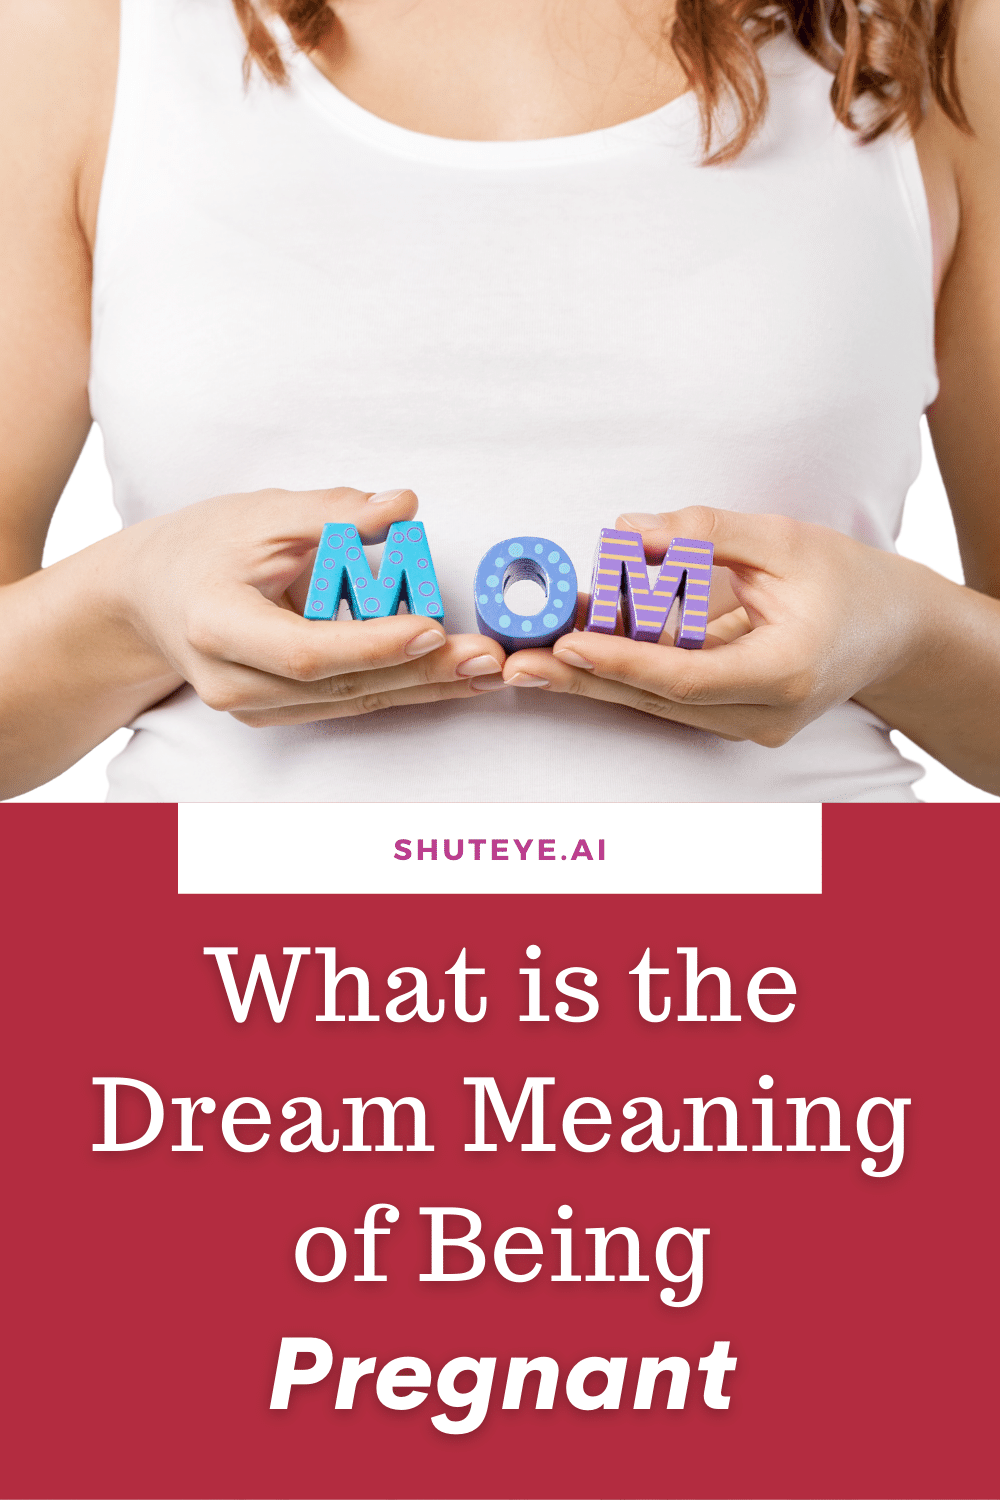 What is the Dream Meaning of Being Pregnant